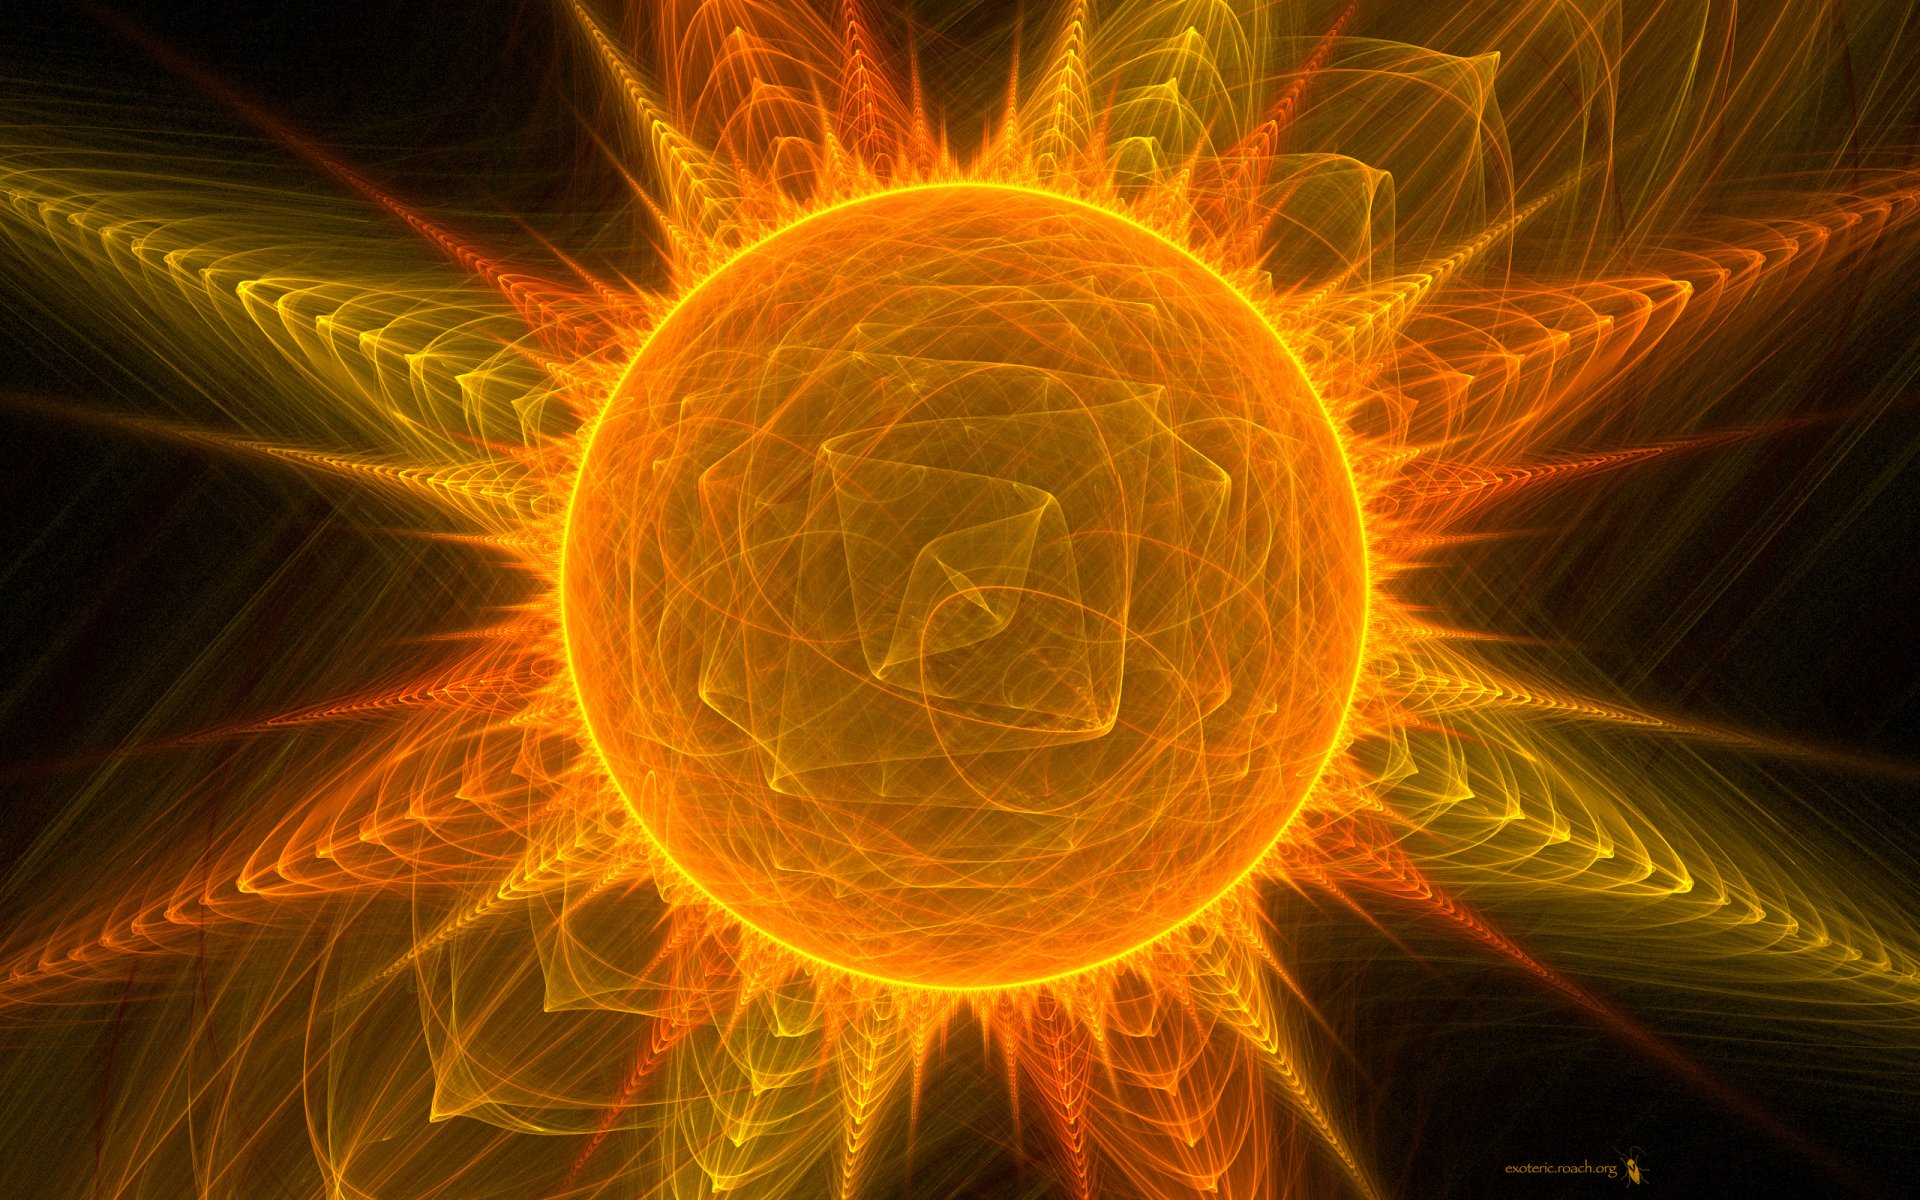 Abstract - Cool  Artistic Sun Abstract Wallpaper